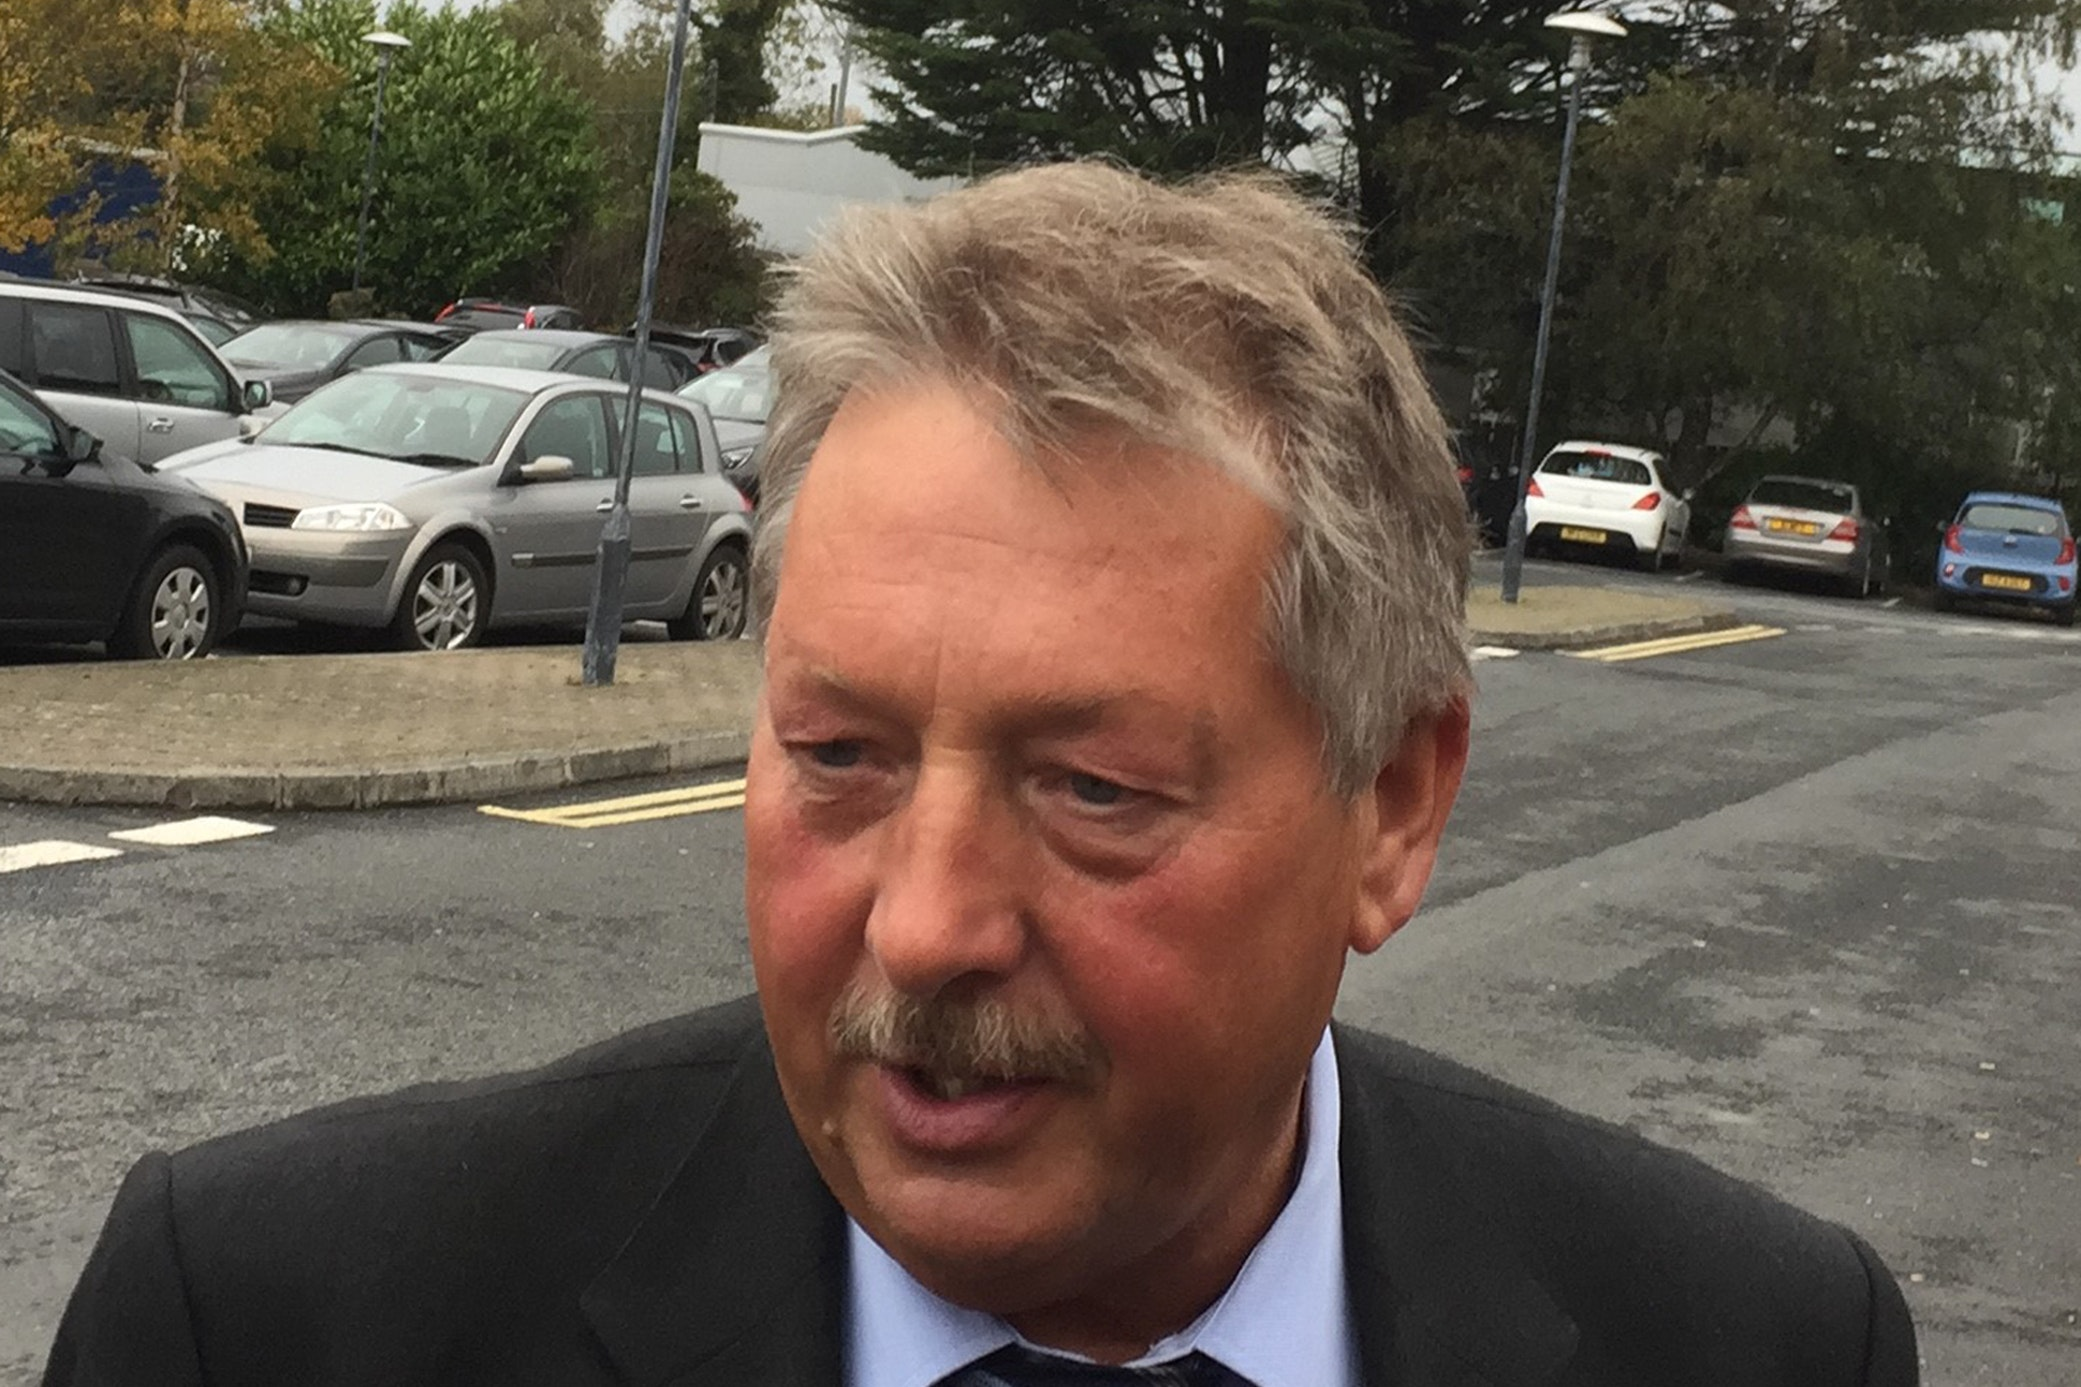 DUP MP: No-one has compromised Government's Brexit position more than itself